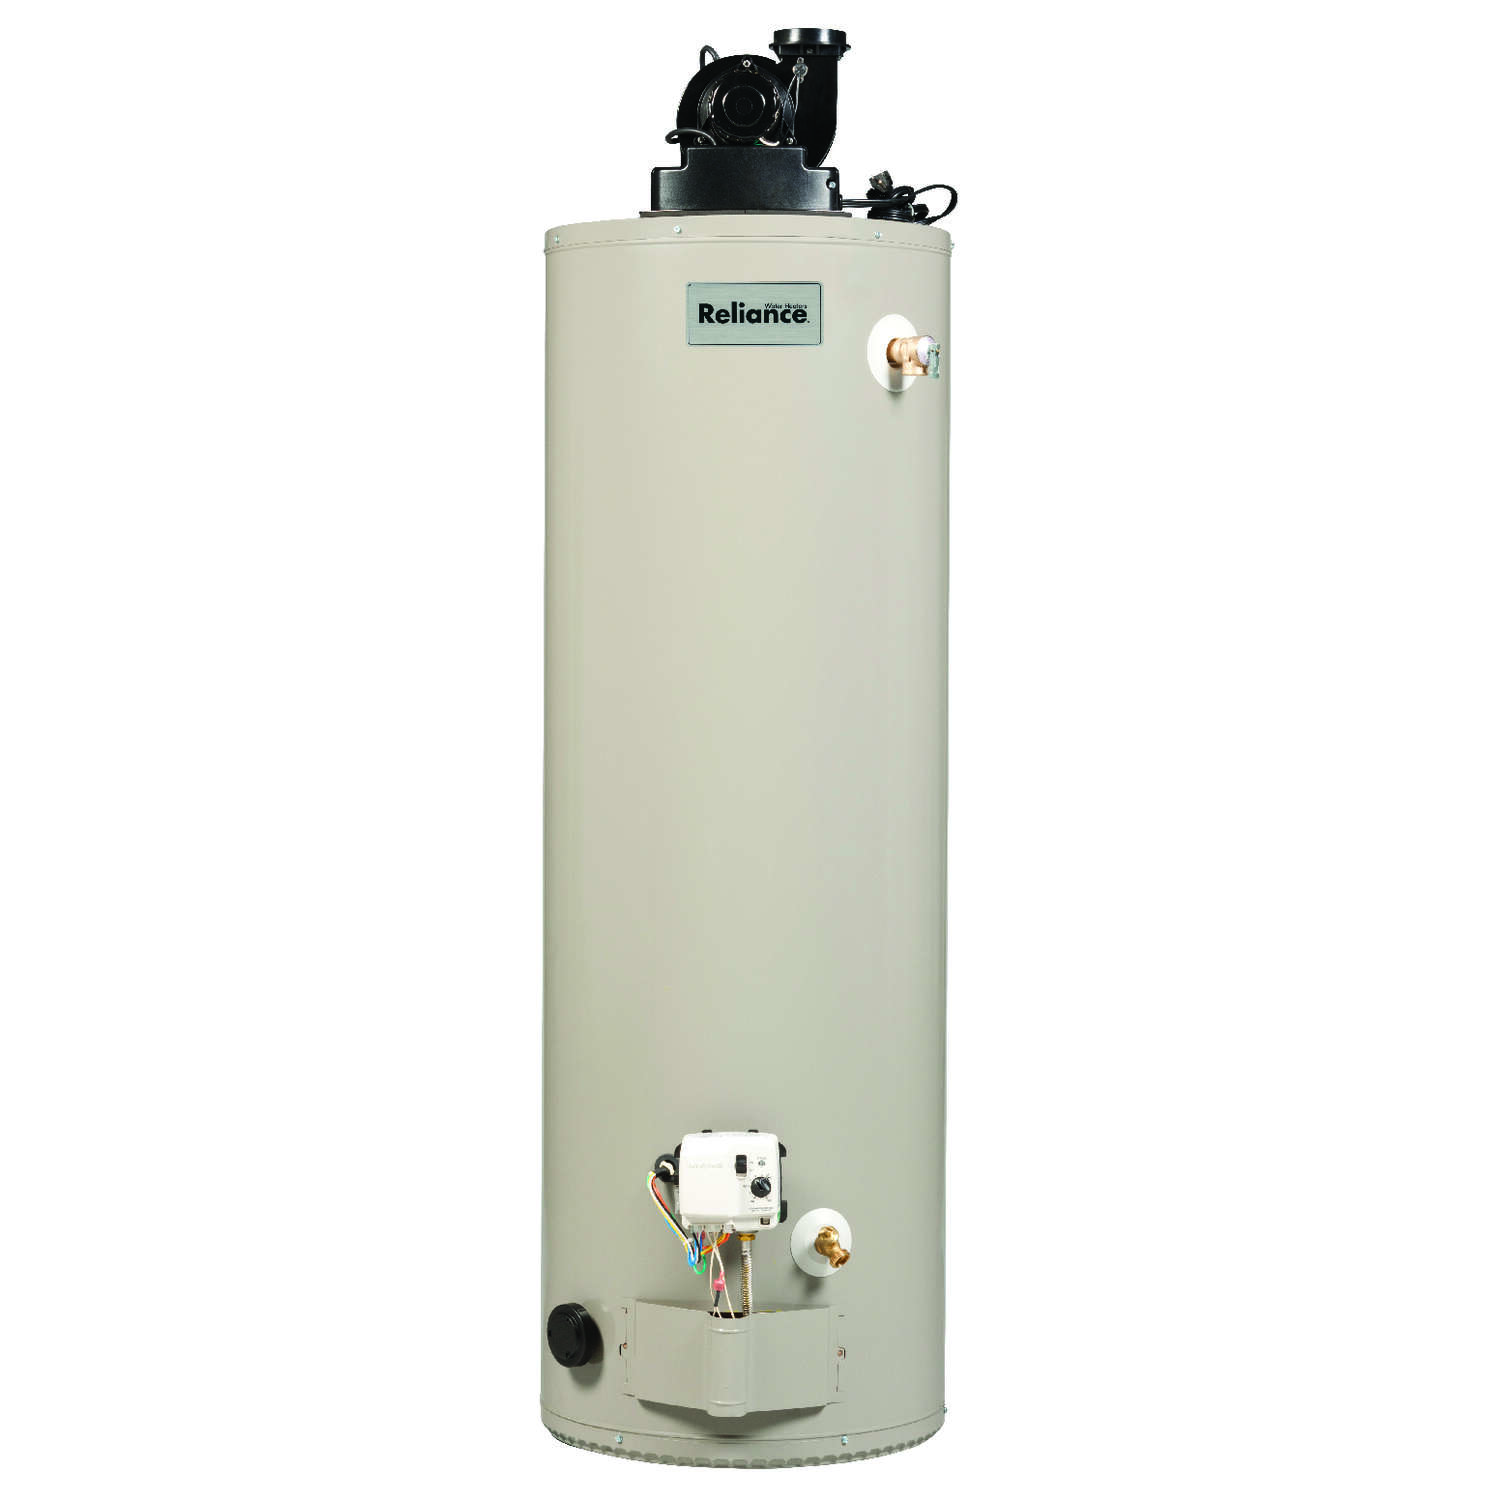 Reliance  50 gal. 50000 BTU Natural Gas  Water Heater